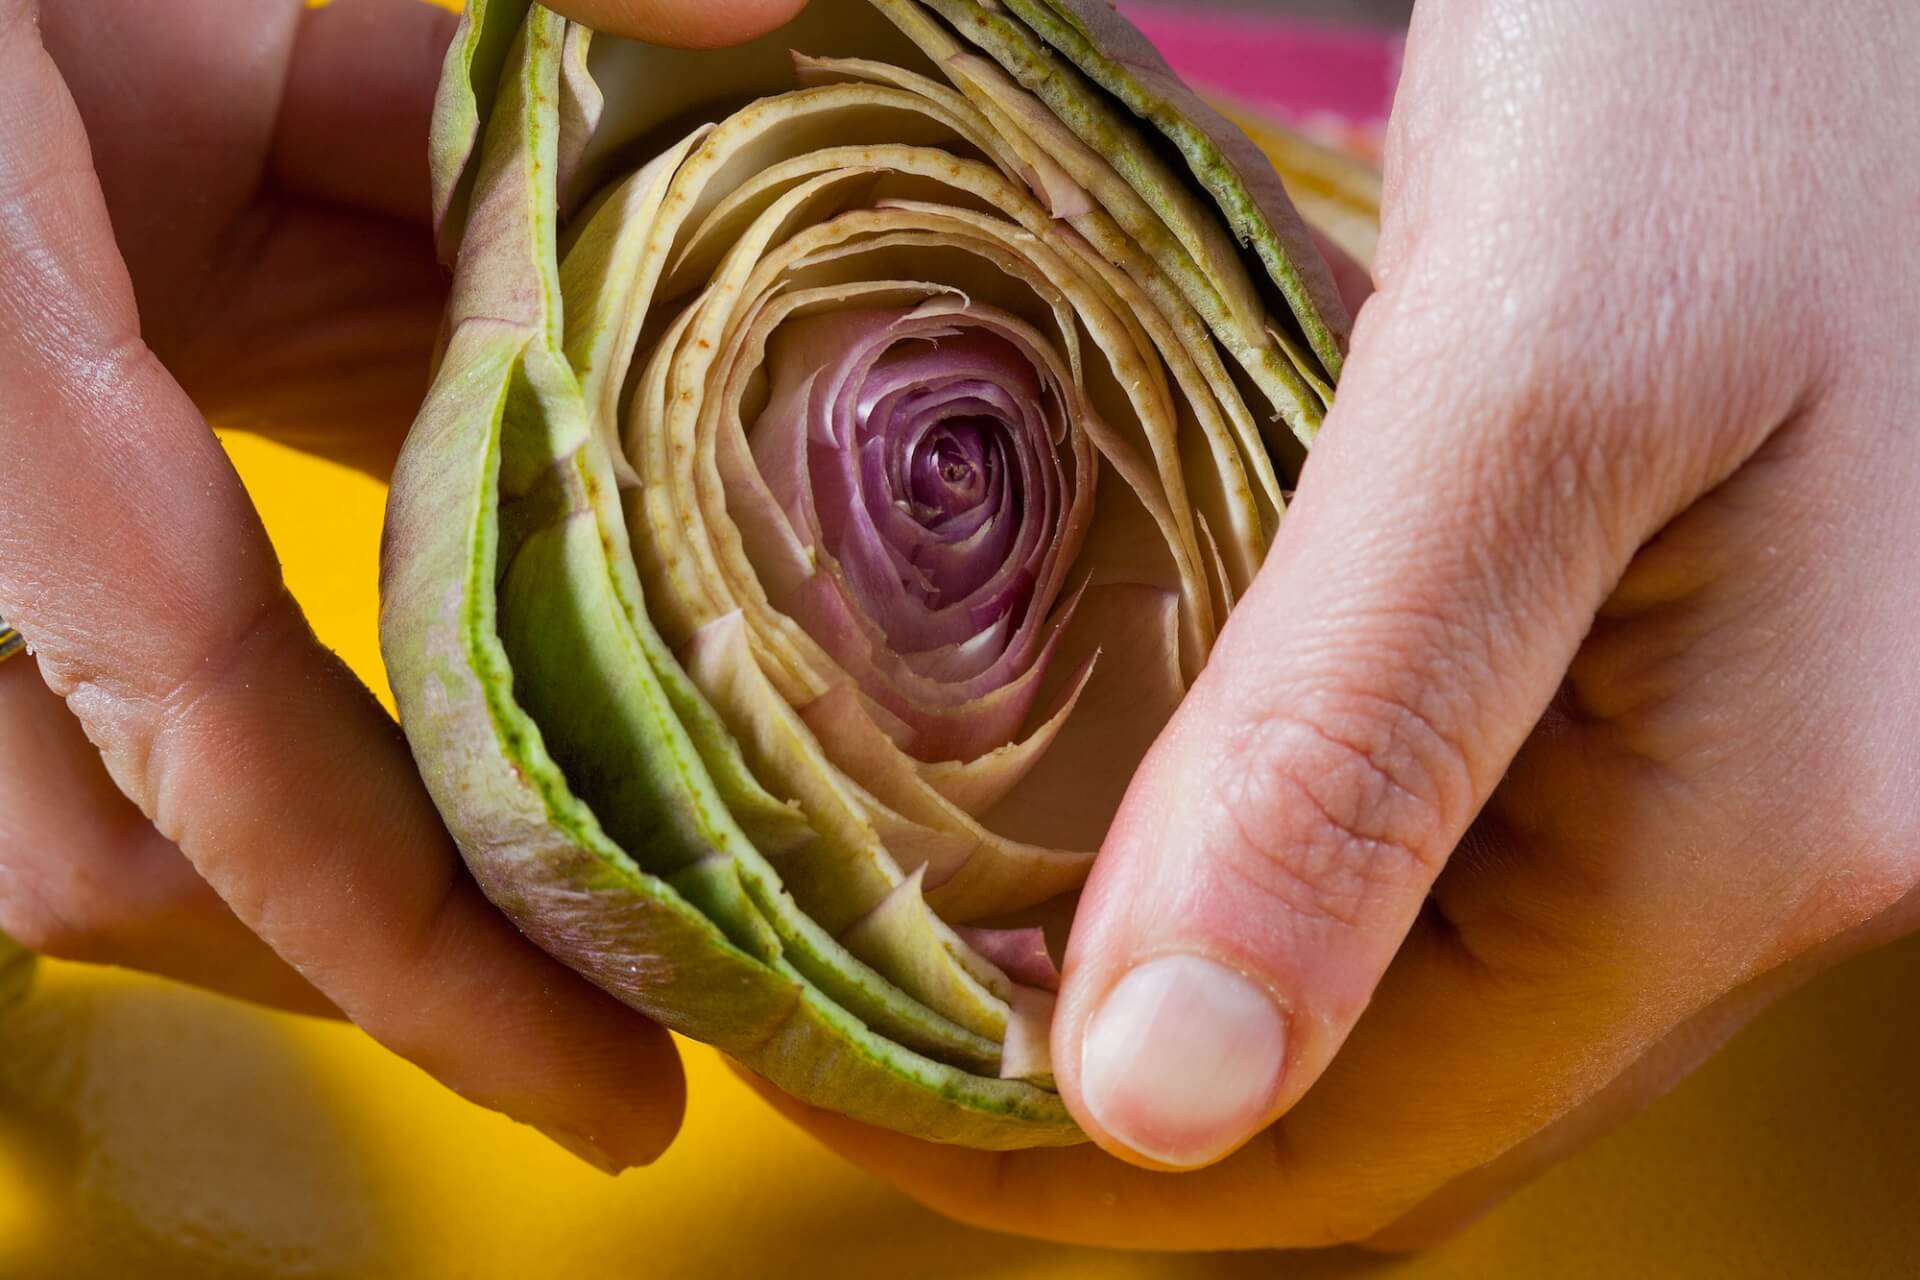 How to Cut an Artichoke Image